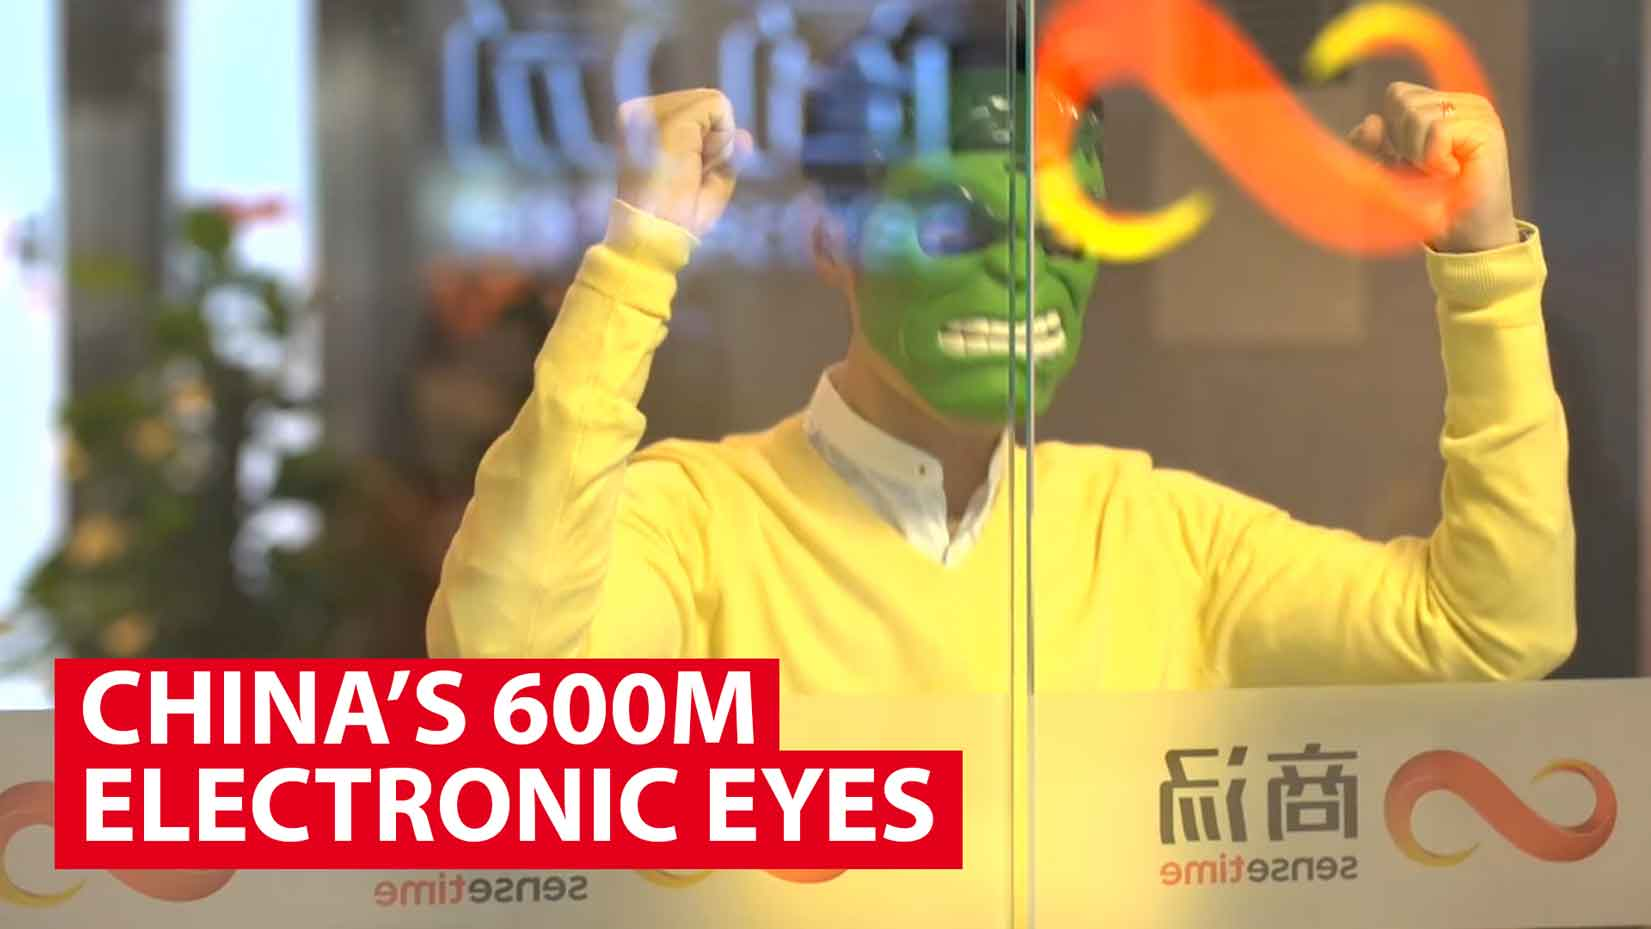 Trying to beat China's 600 million electronic eyes